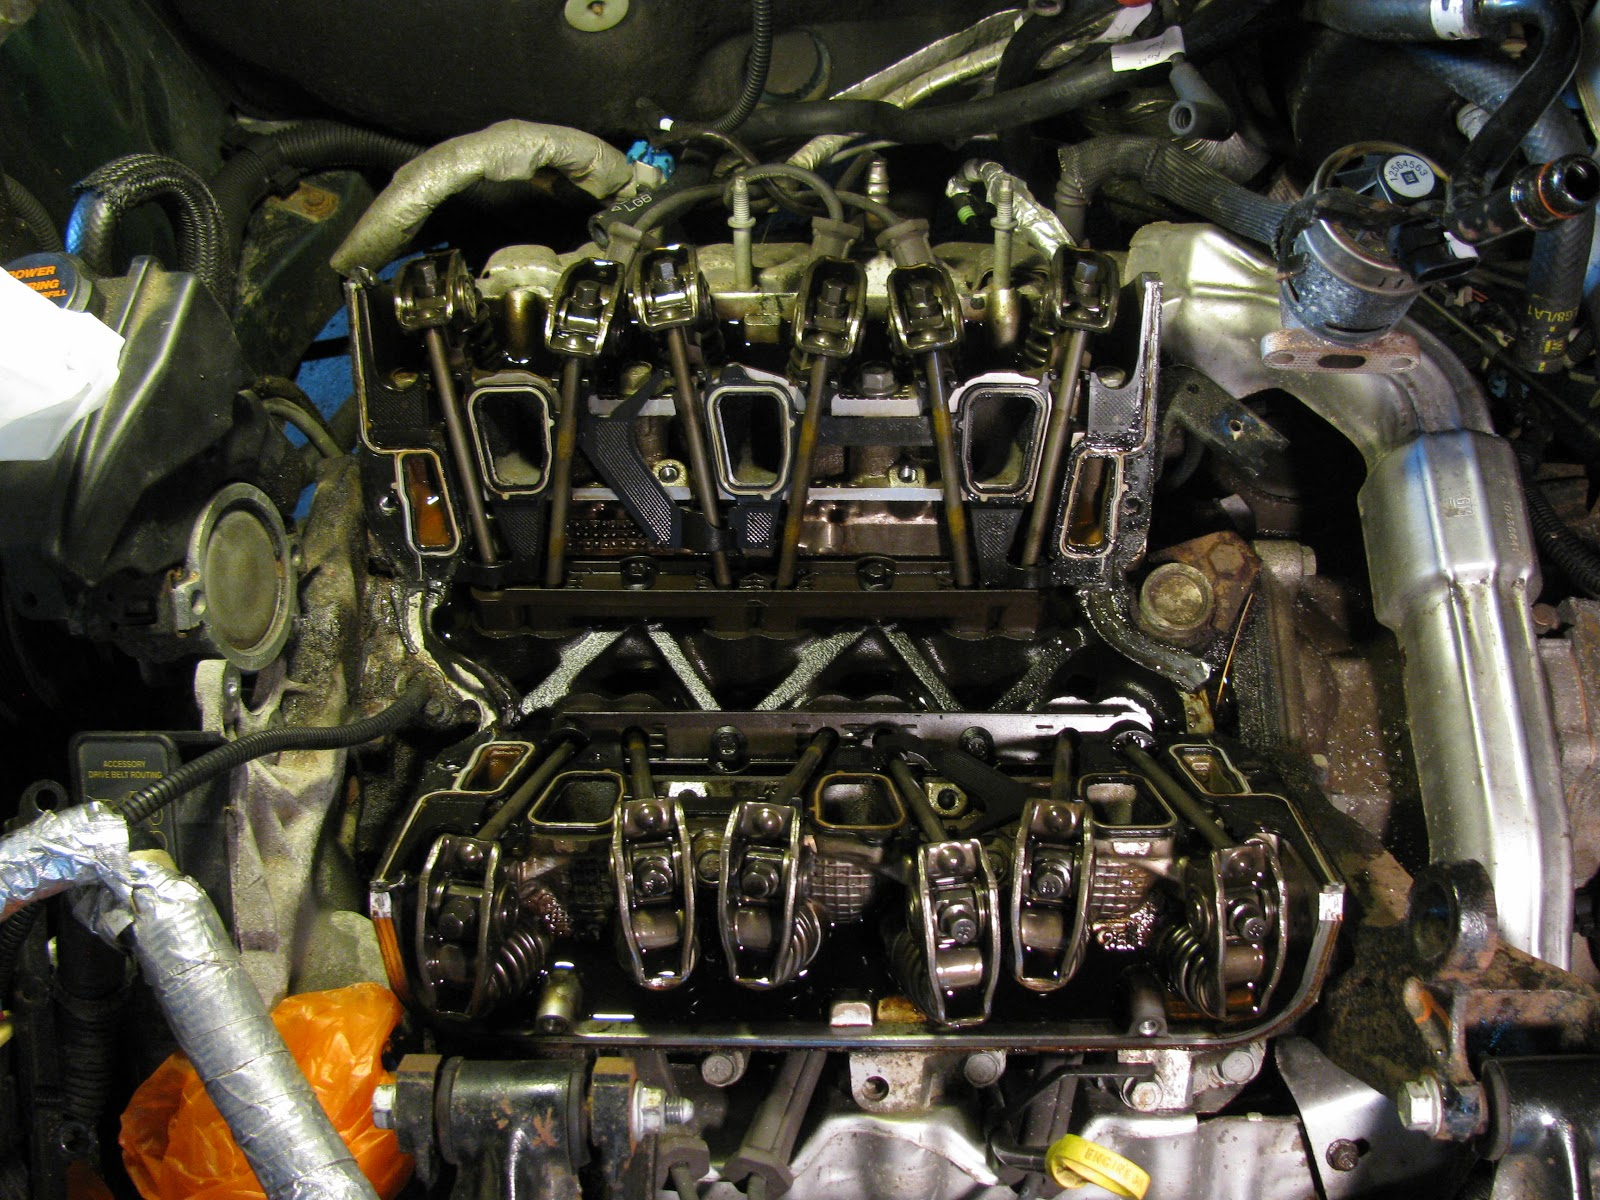 View of the 3.1 with the lower intake removed